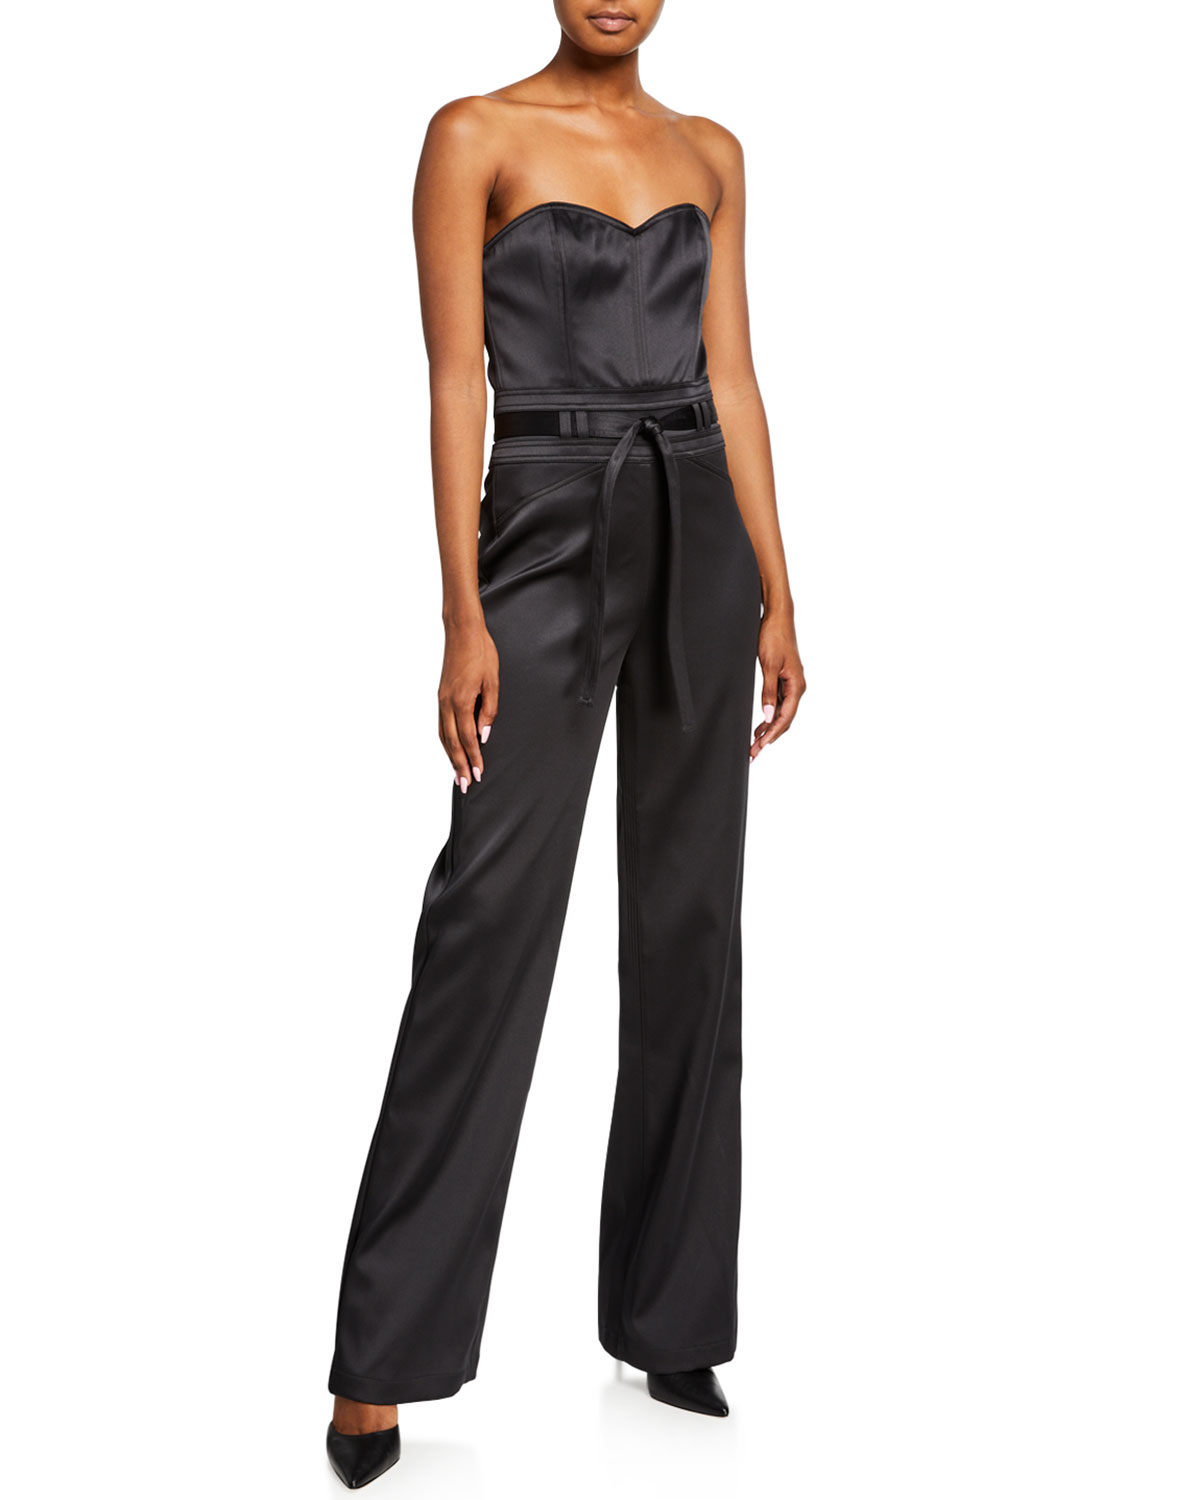 J Brand Suits JENNA STRAPLESS SATEEN JUMPSUIT